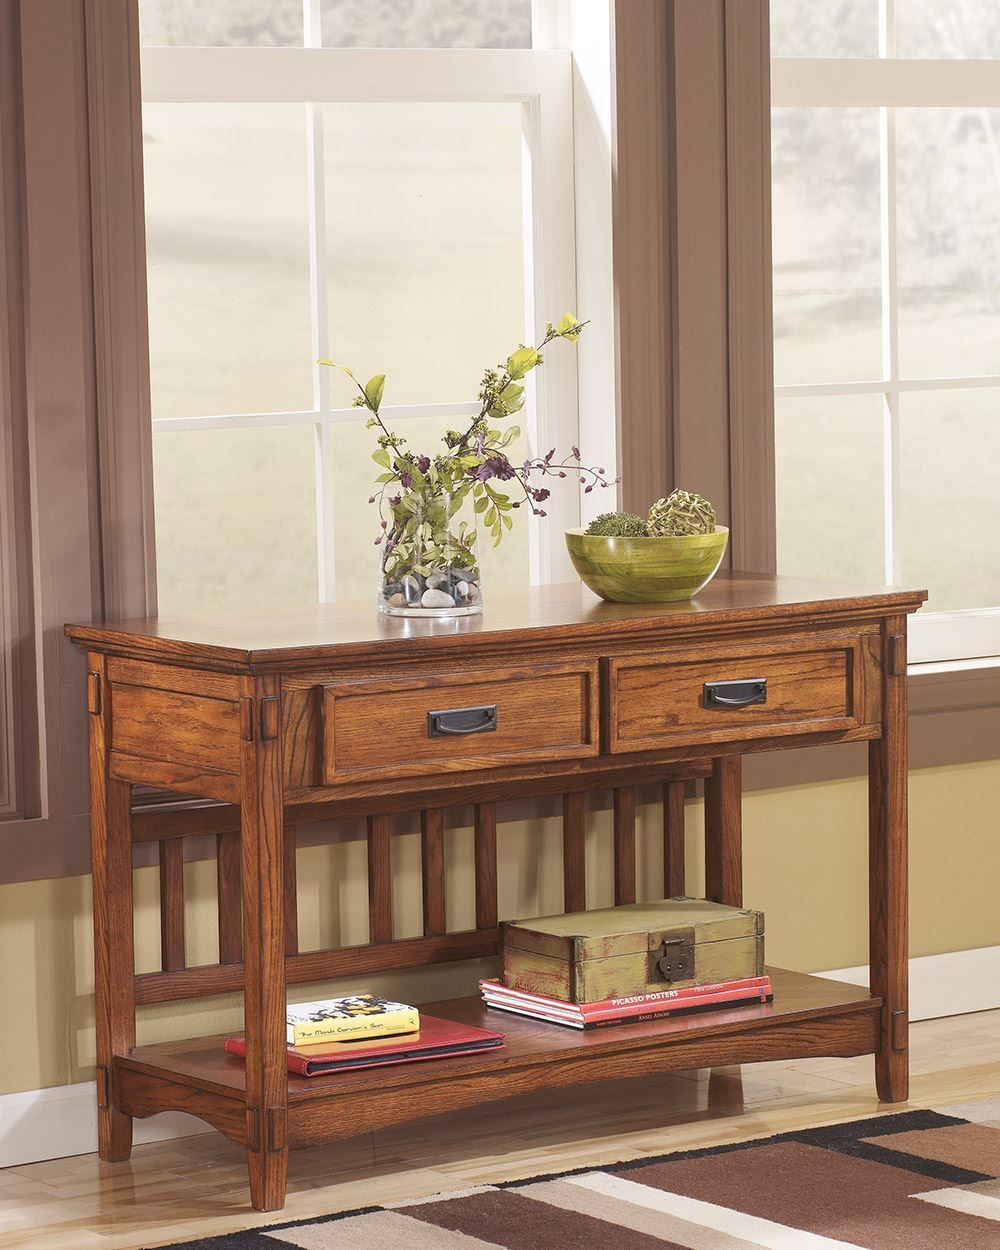 Picture of Cross Island Console Sofa Table